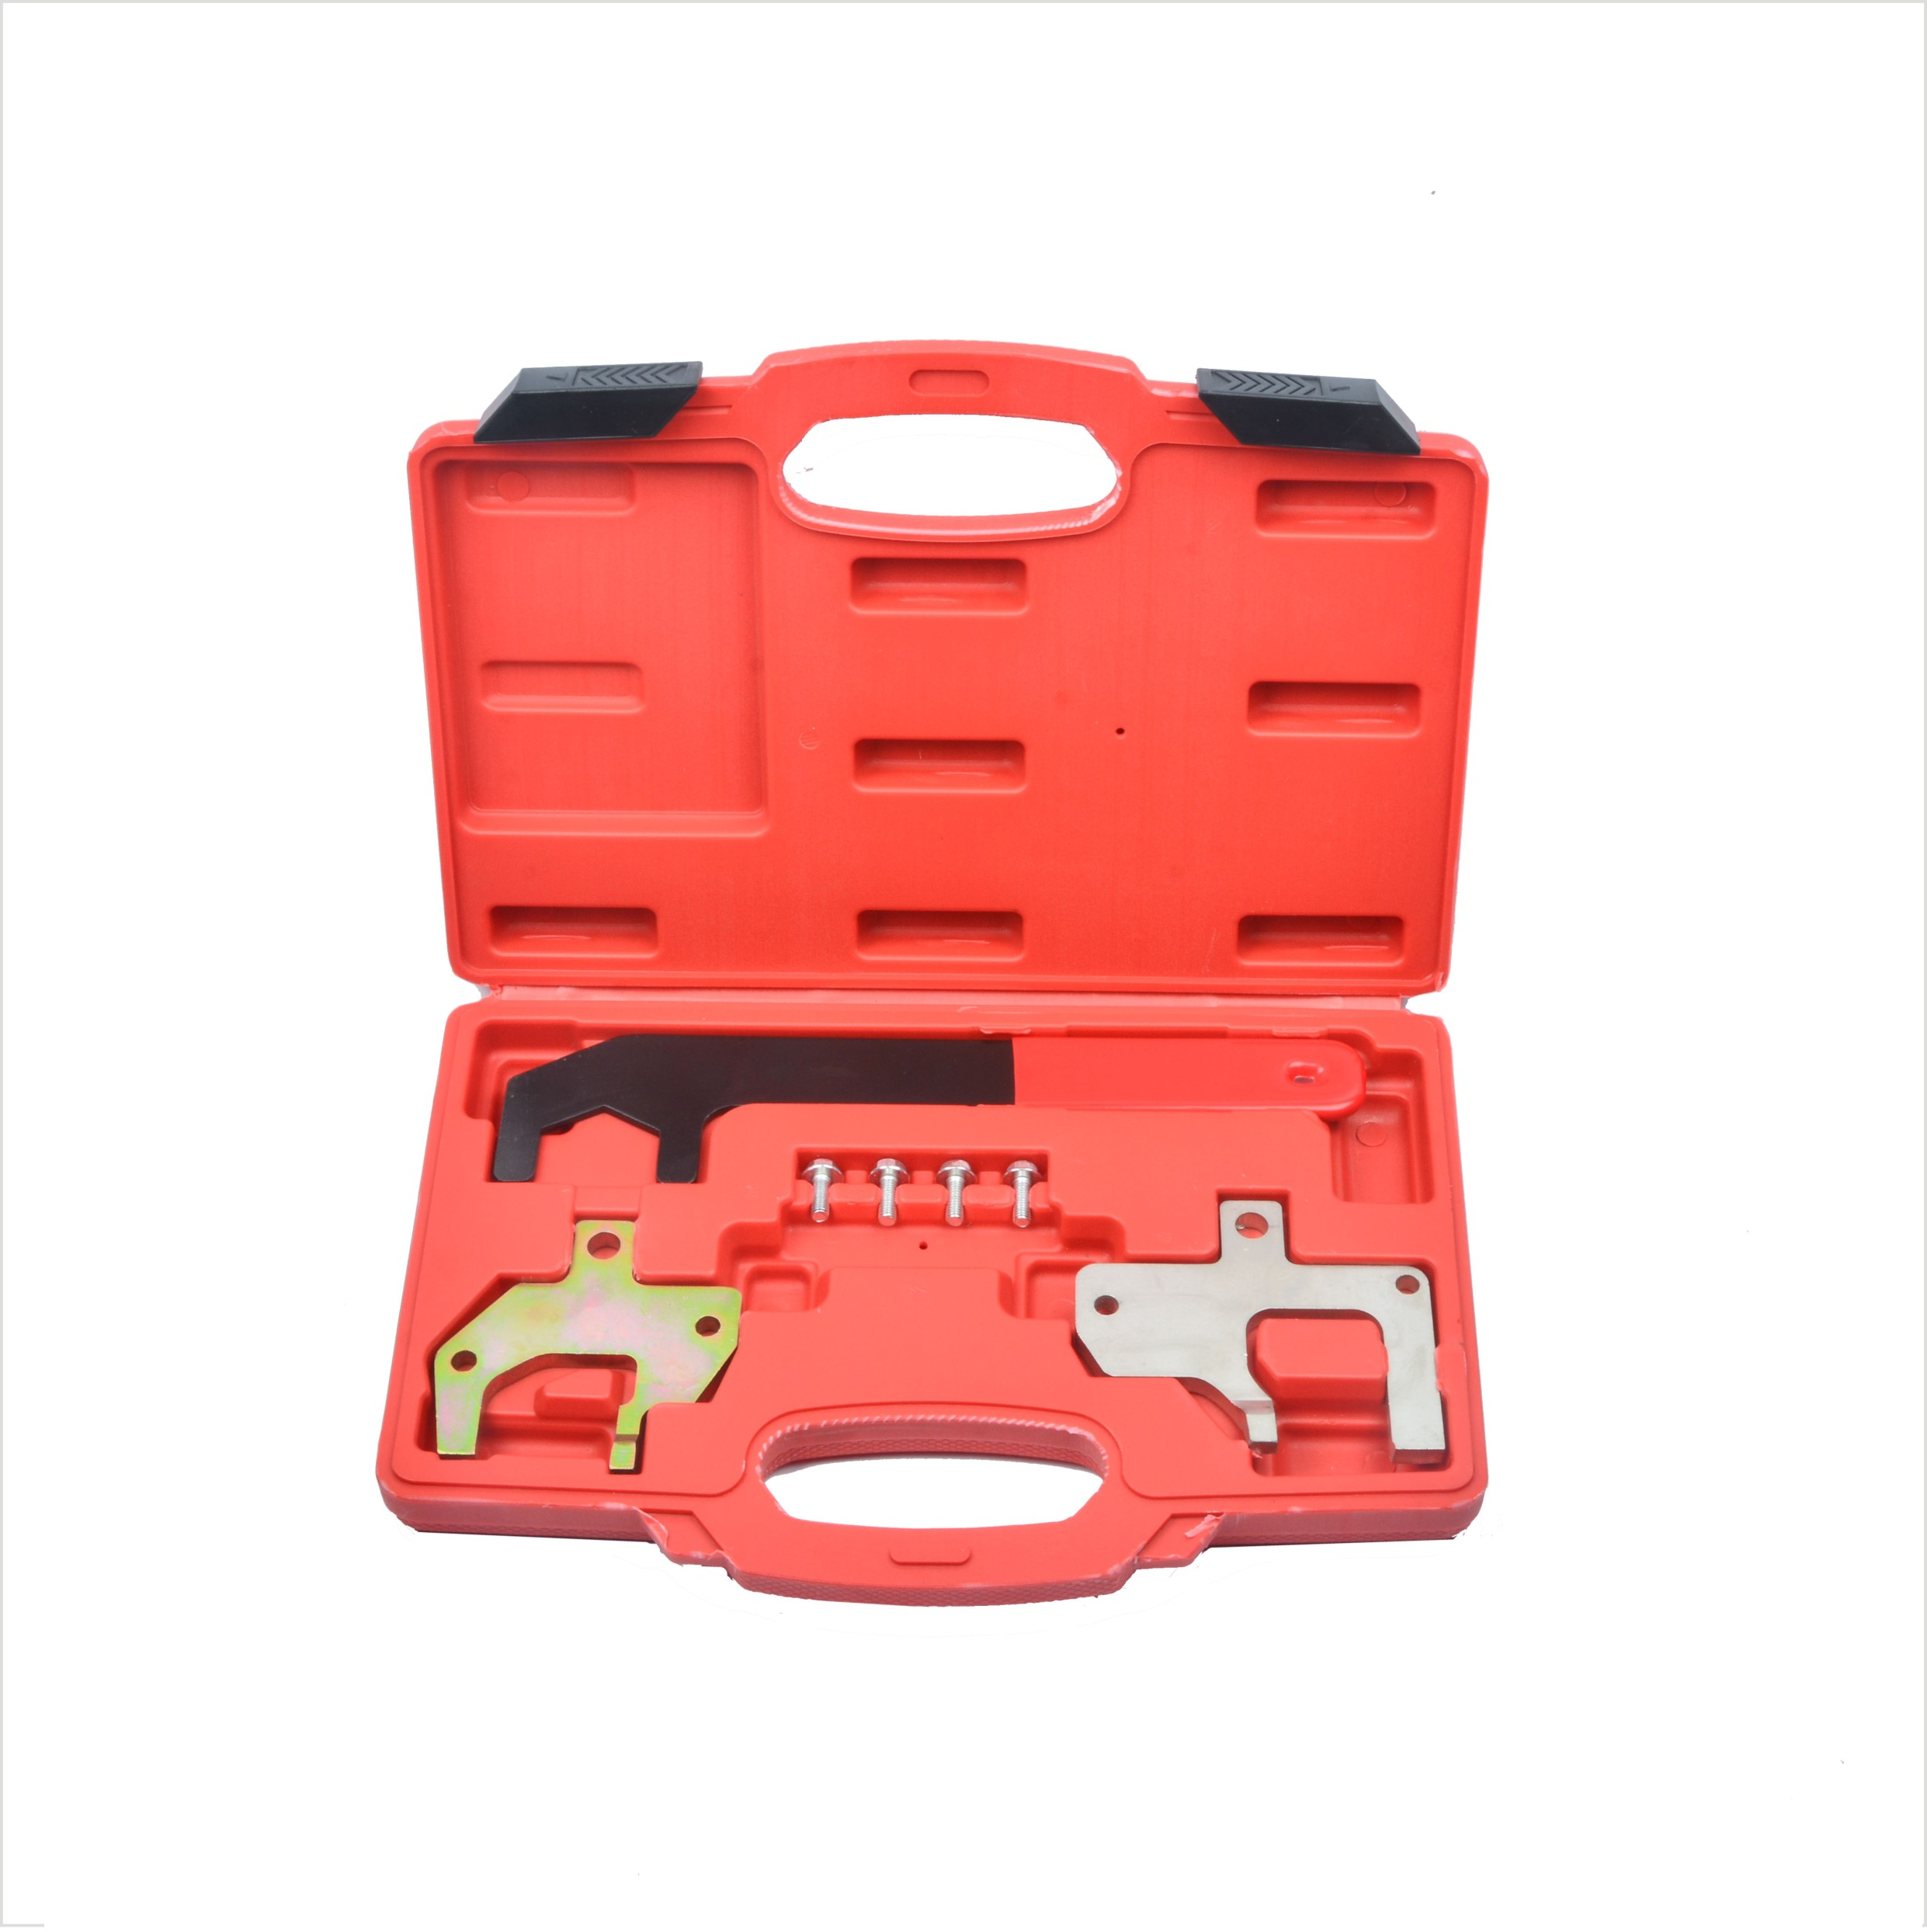 Camshaft Alignment Timing Locking Tools For Mercedes Benz M112/M113